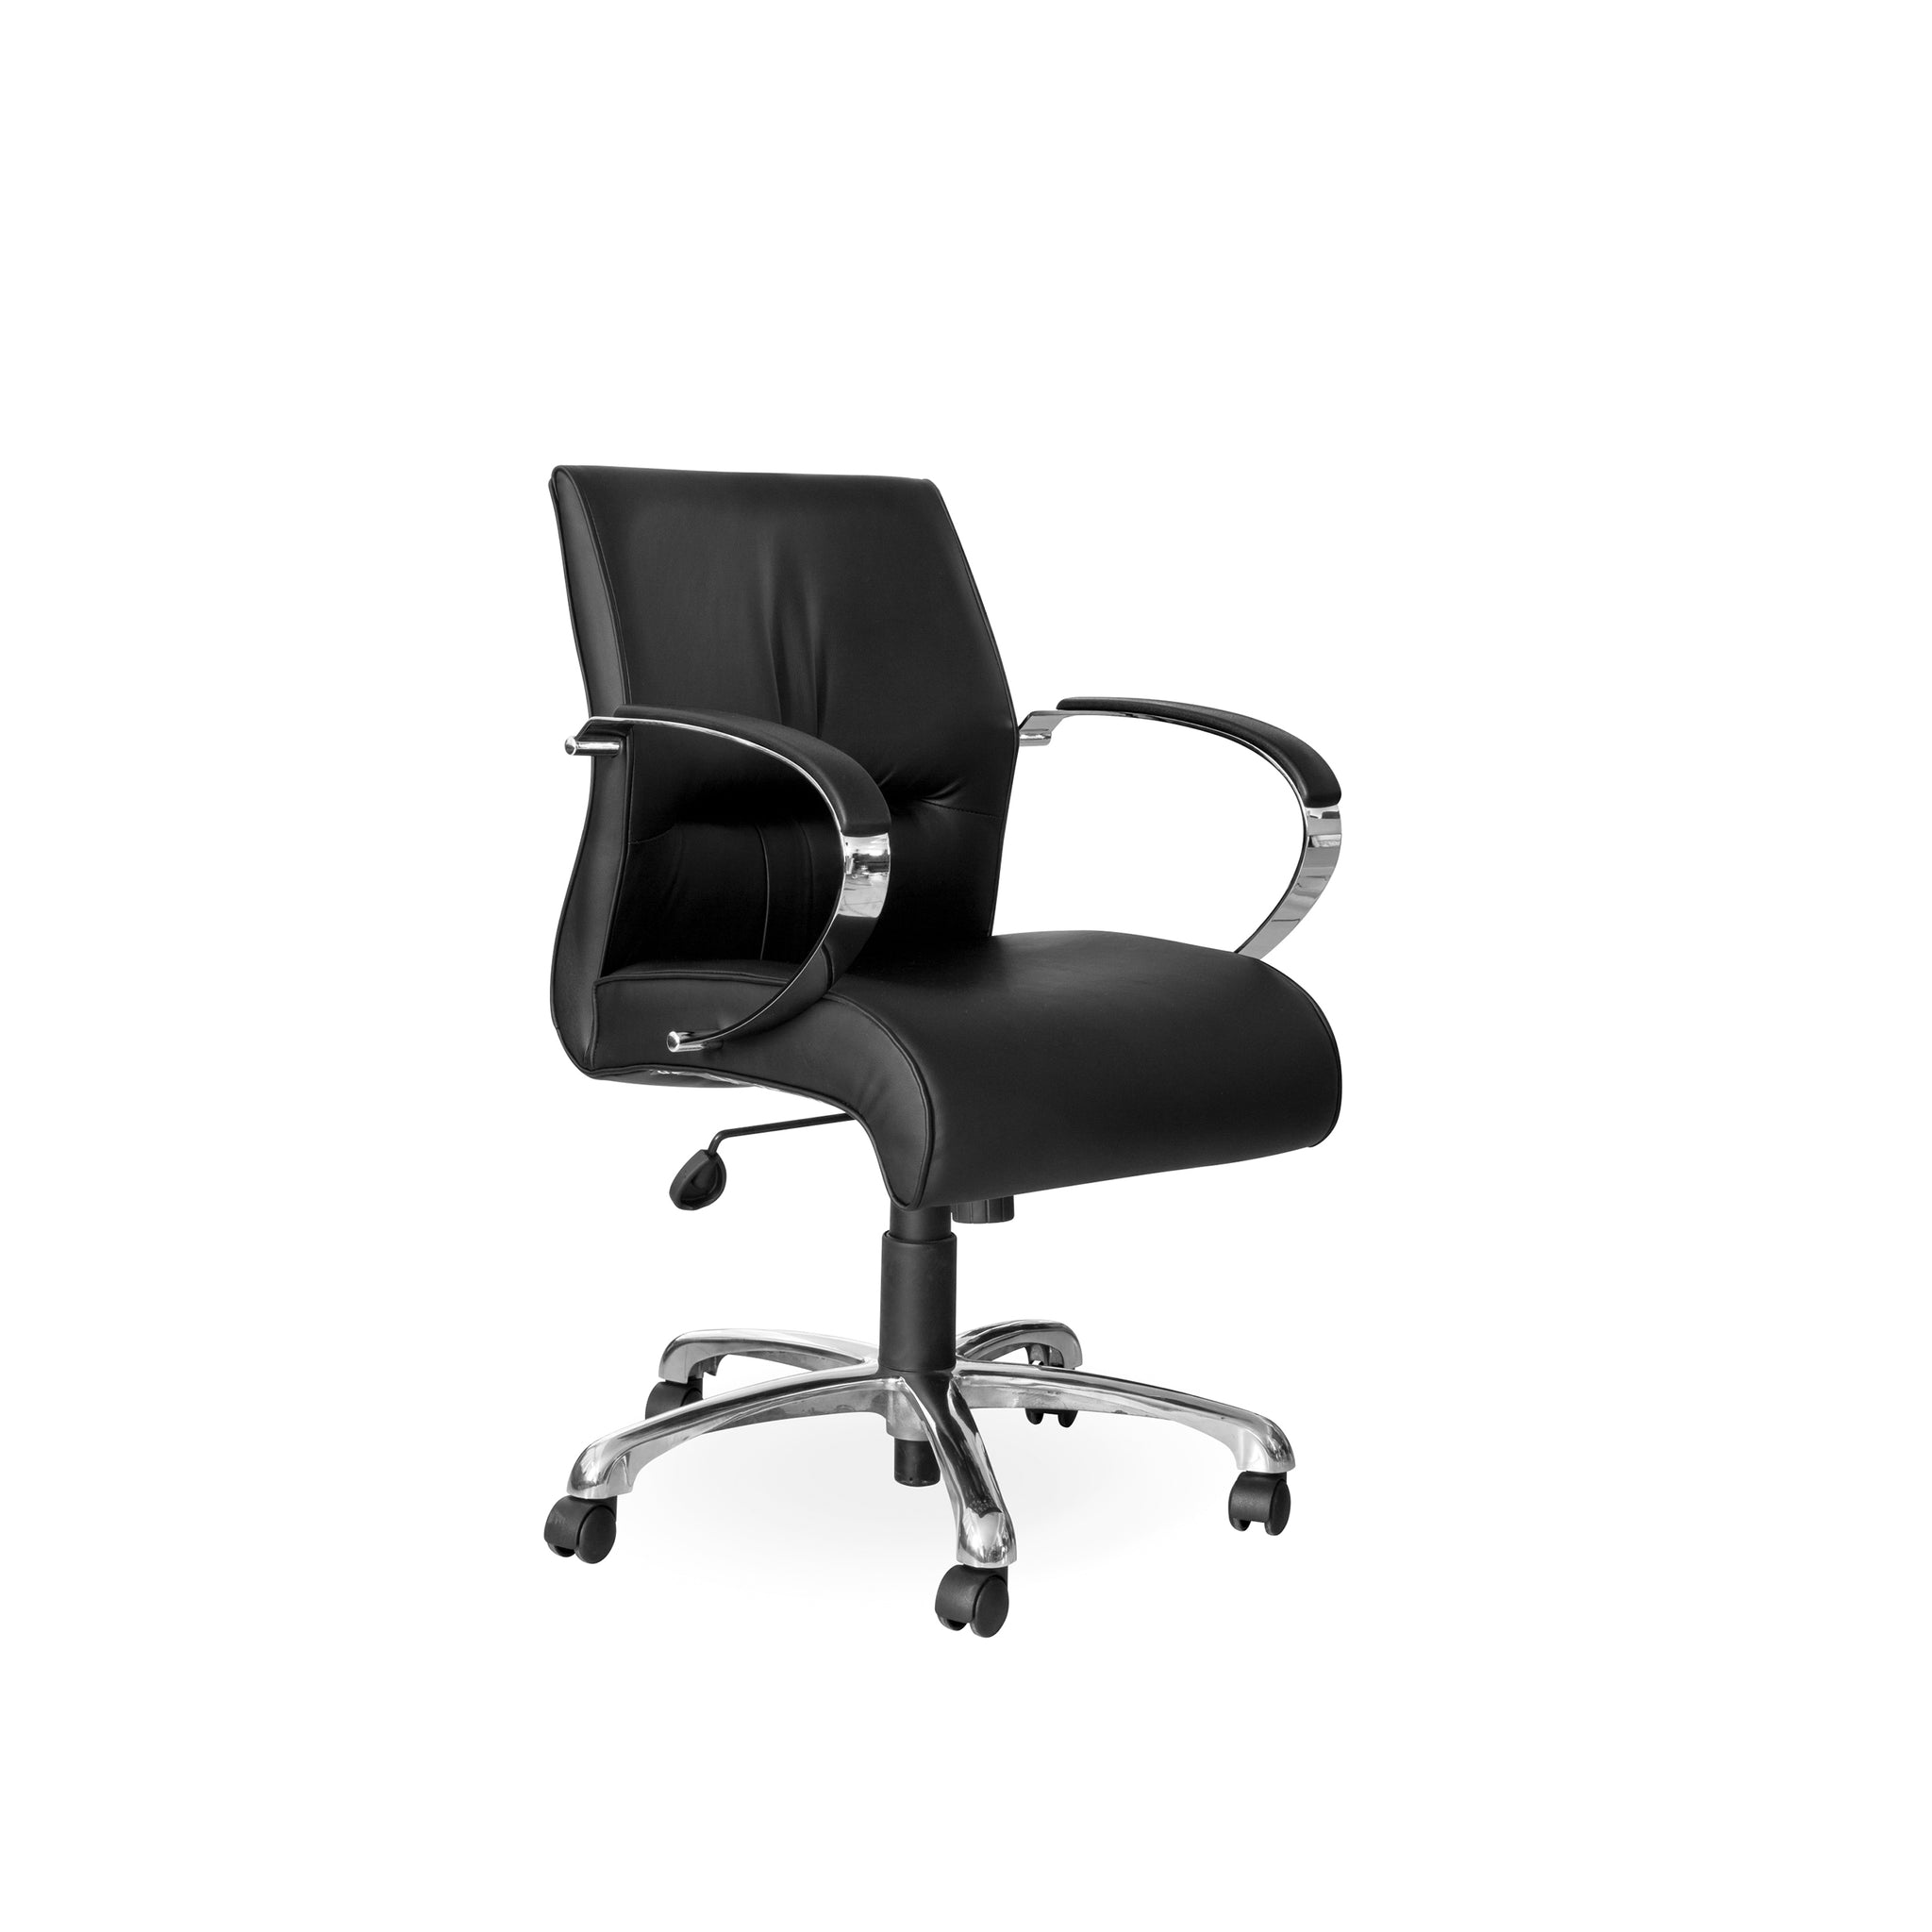 Hedcor Salvador Chrome office chair mid back